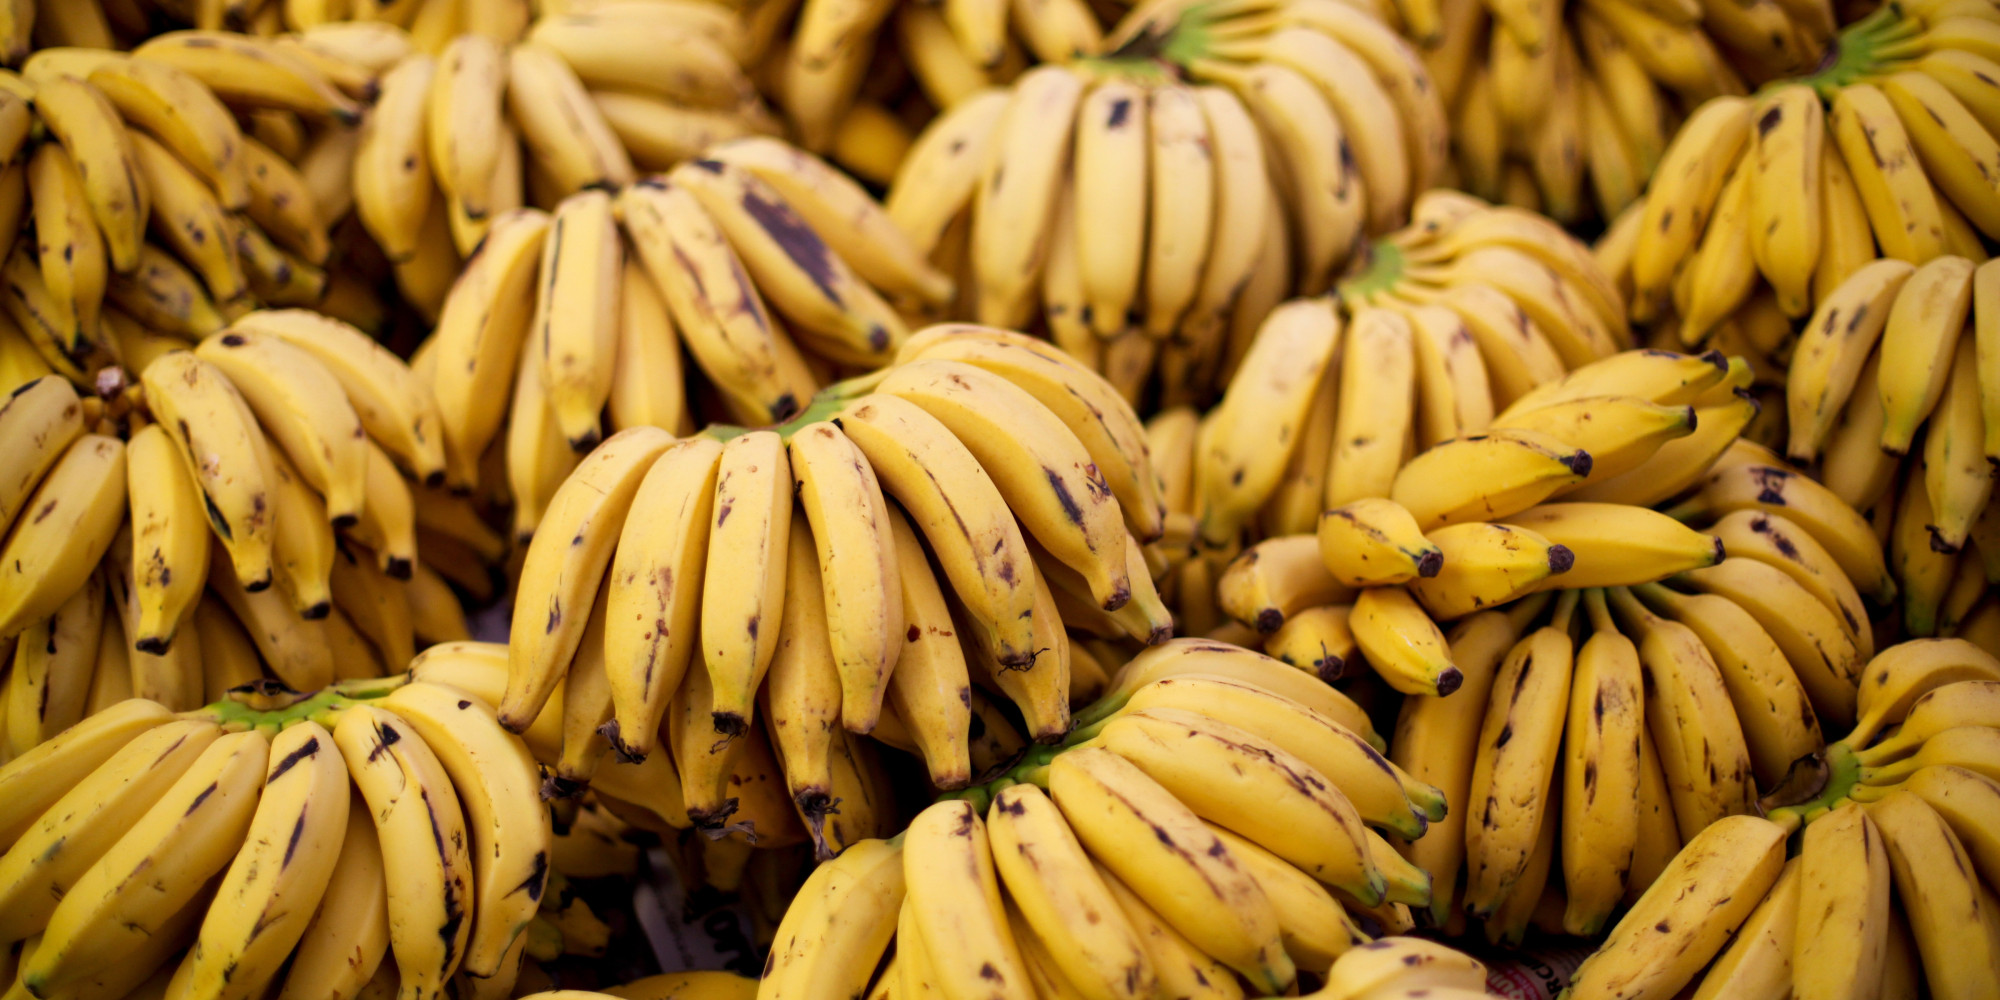 banana fungus insect outbreak threaten global supply huffpost